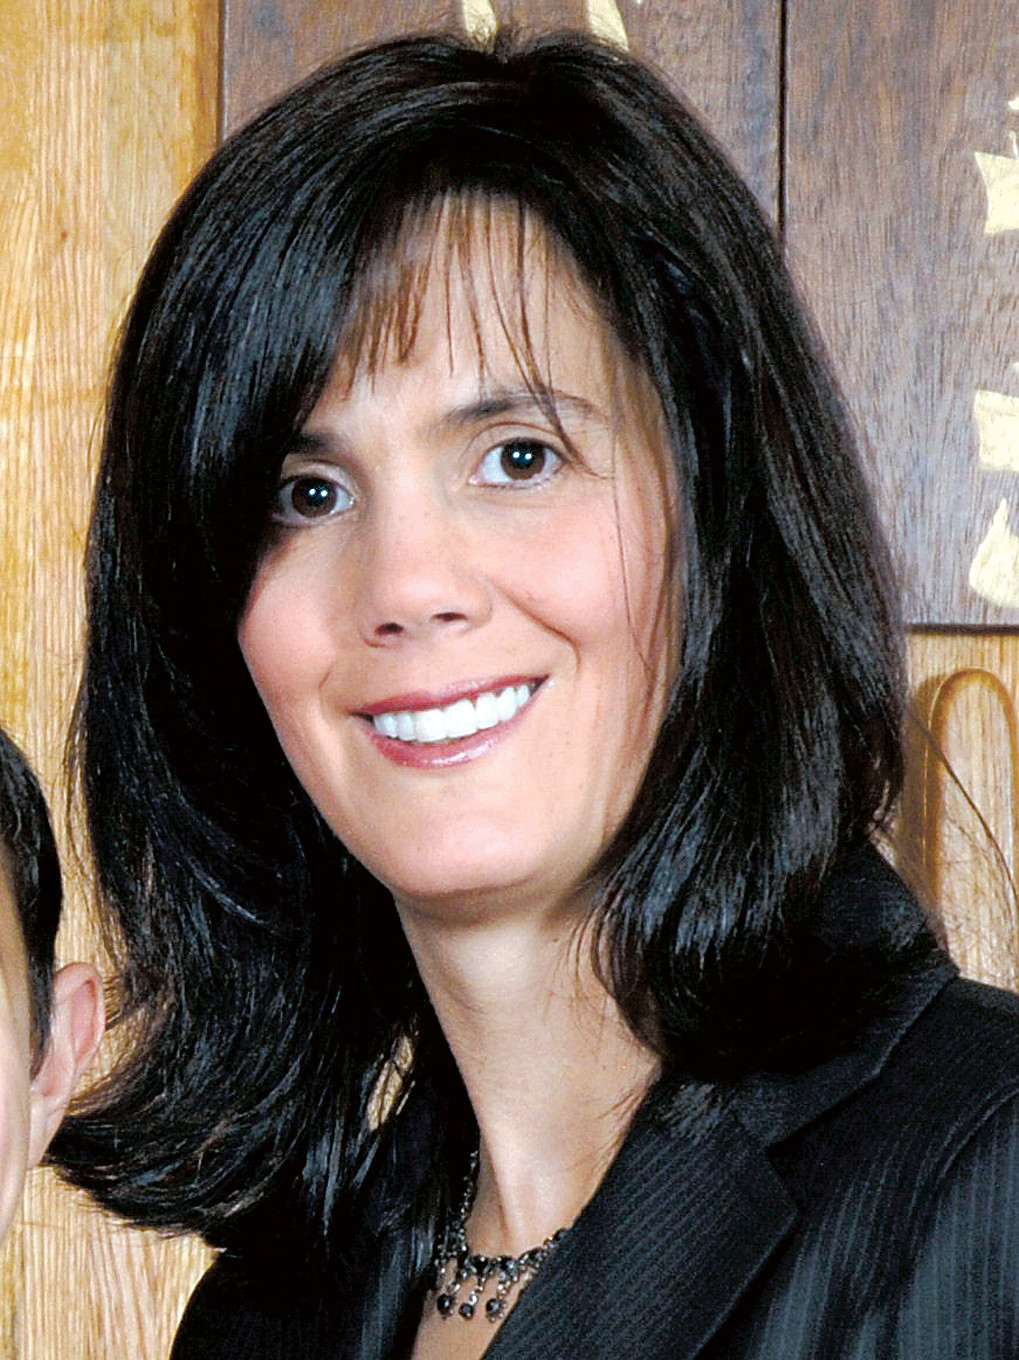 Lawrence trustee Tova Plaut